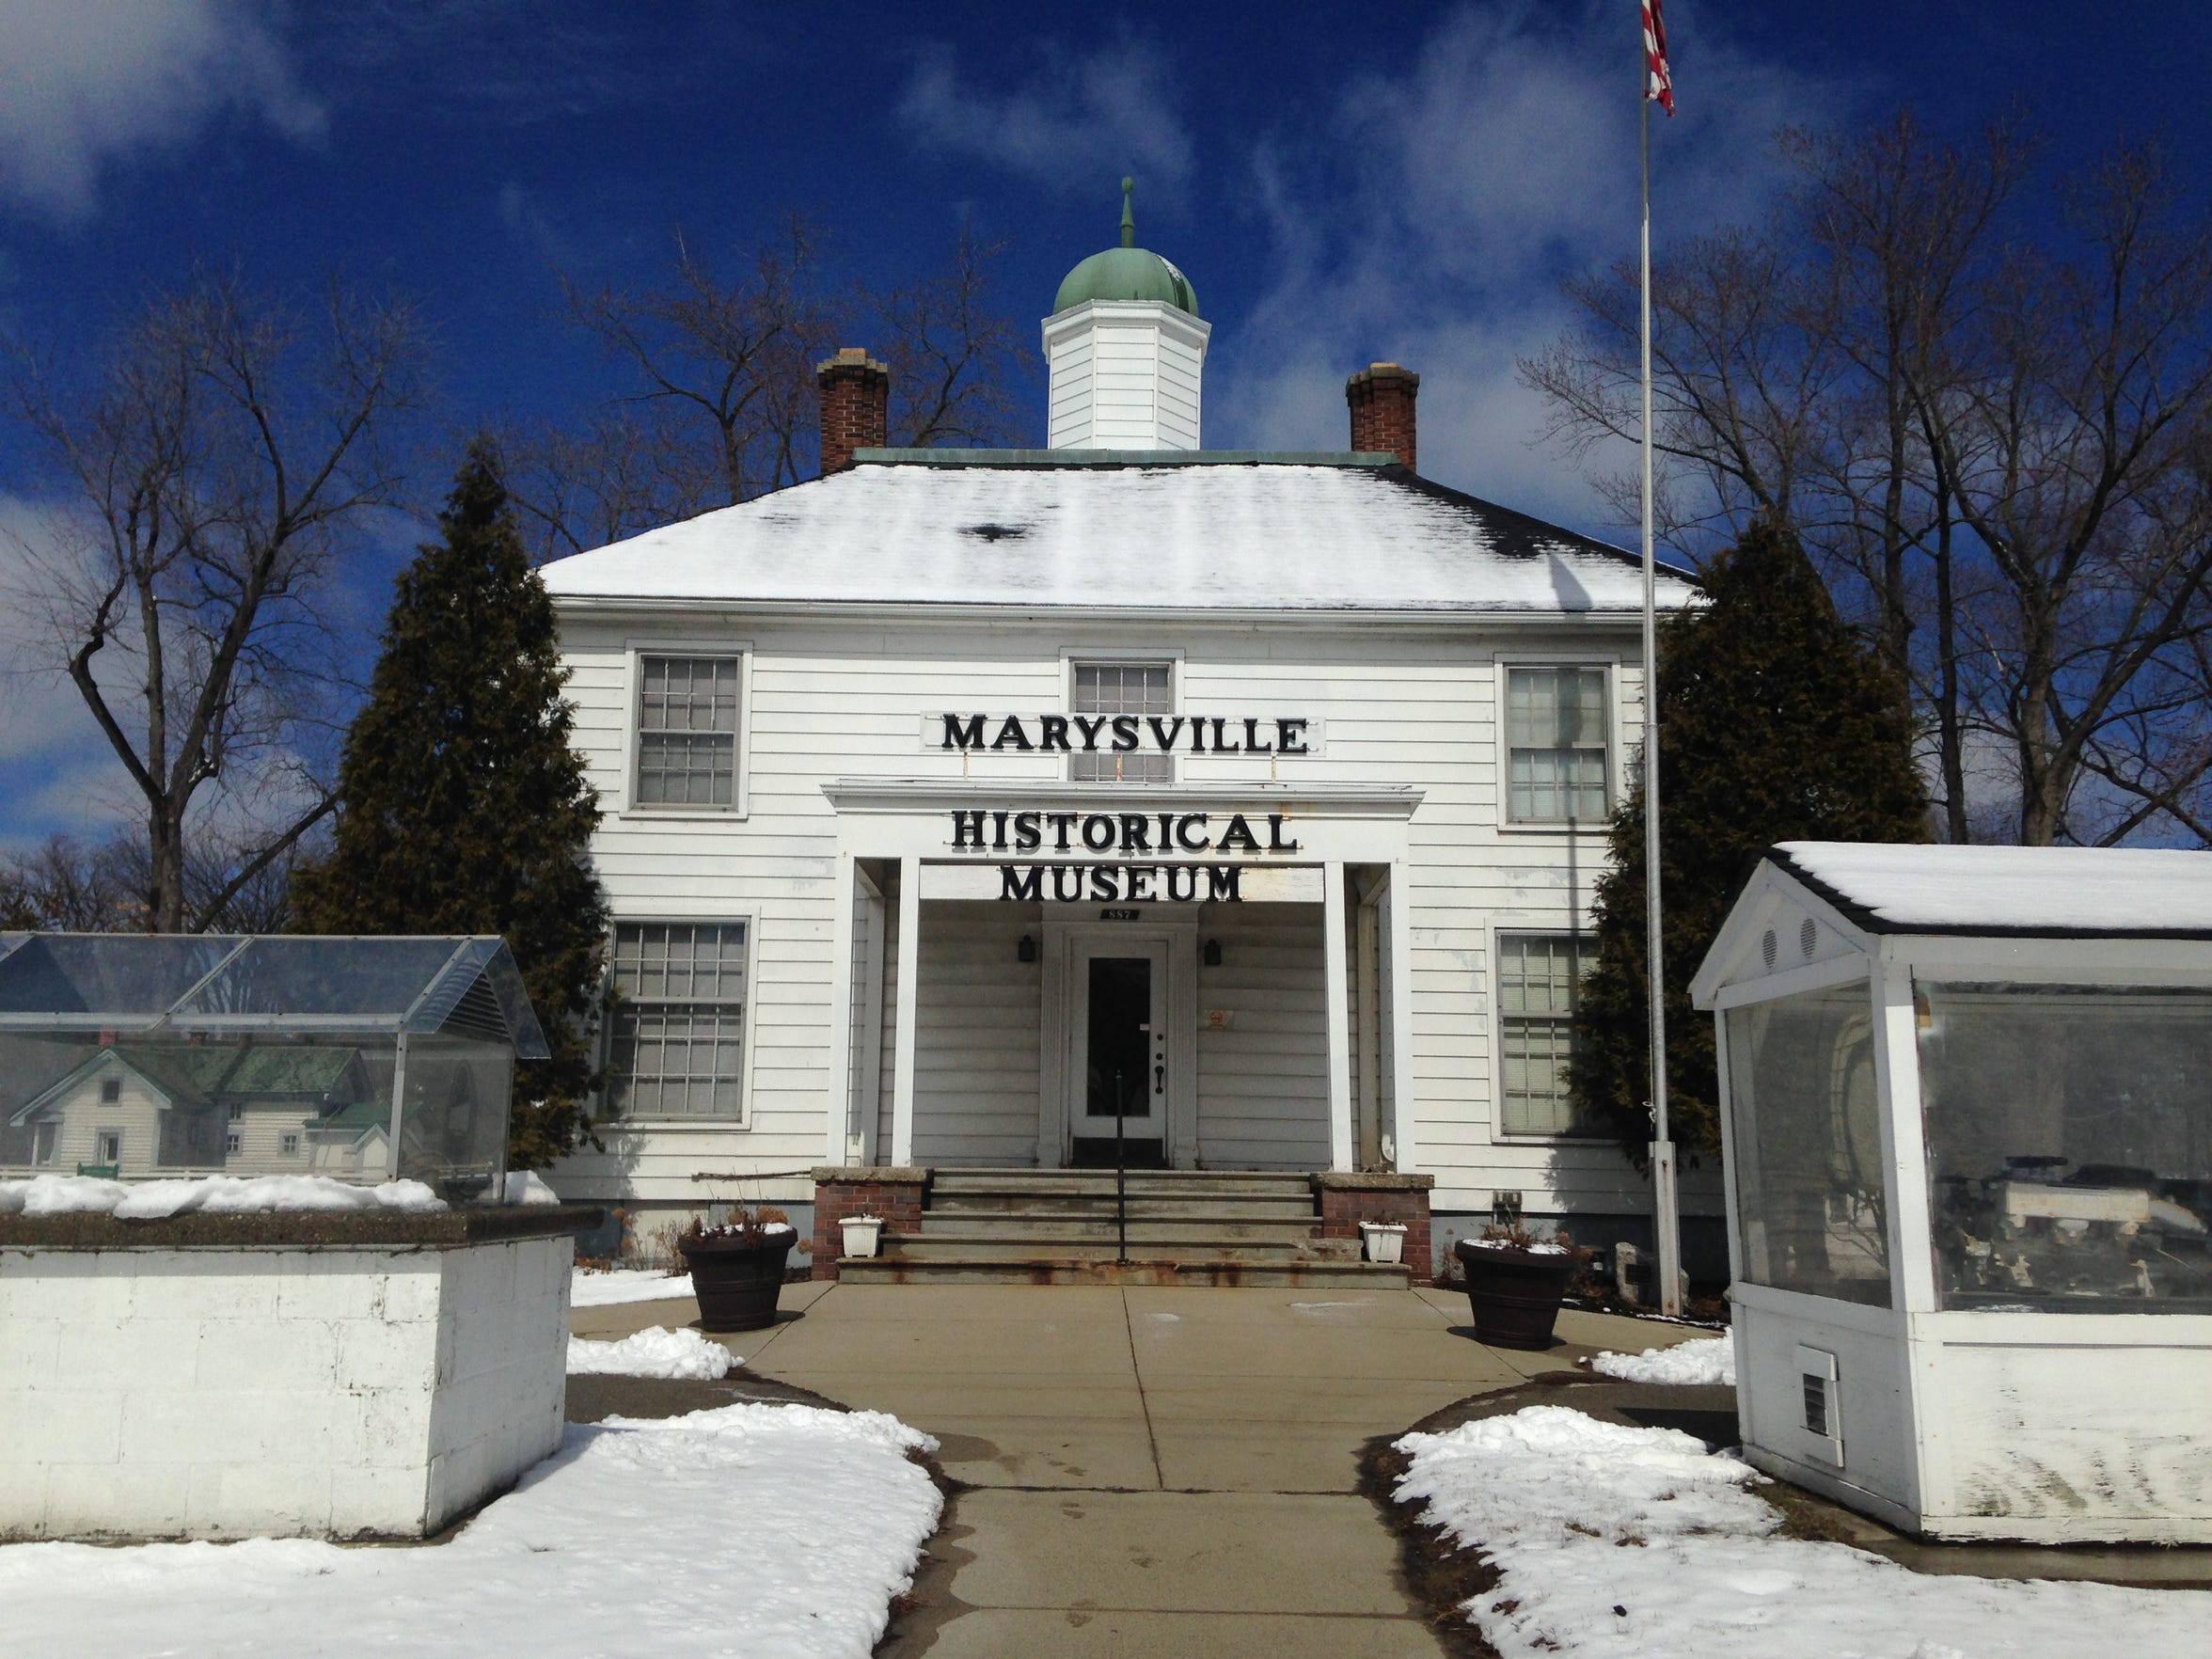 The Marysville Historical Museum, pictured more than four years ago, is housed in the old city hall building  at Marysville City Park, but it isn't regularly open. Officials are expected to consider its future during spring budget talks in 2020.